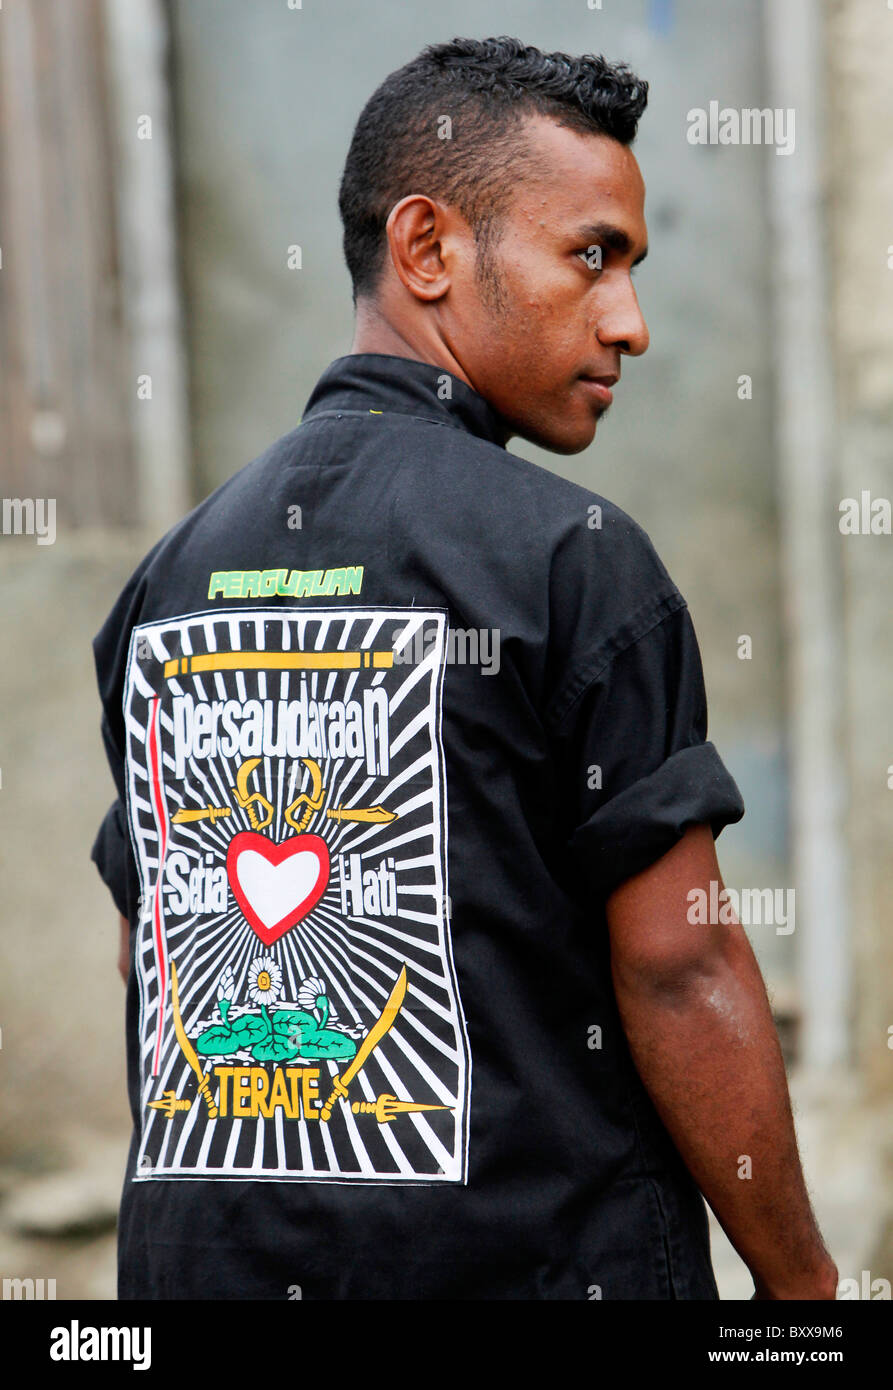 Emblem of the notorious Martial Arts group and youth gang PSHT, Dili, Timor Leste (East Timor) - Stock Image